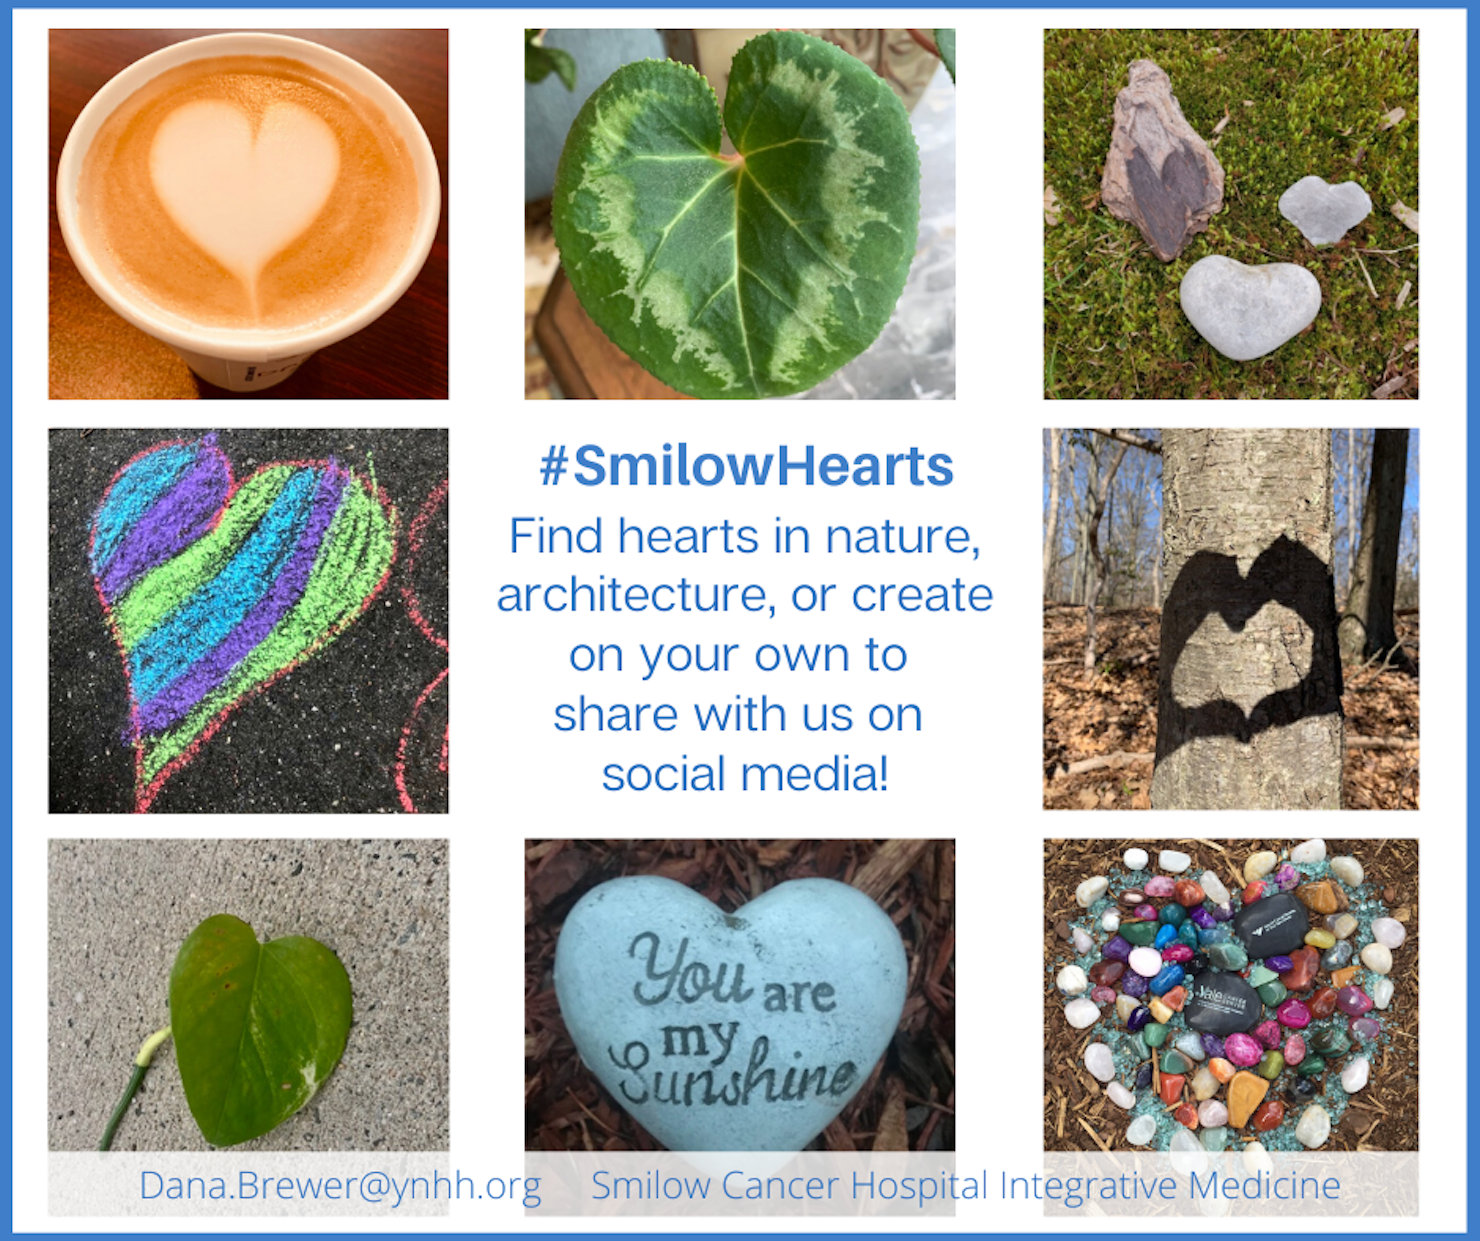 #SmilowHearts Project